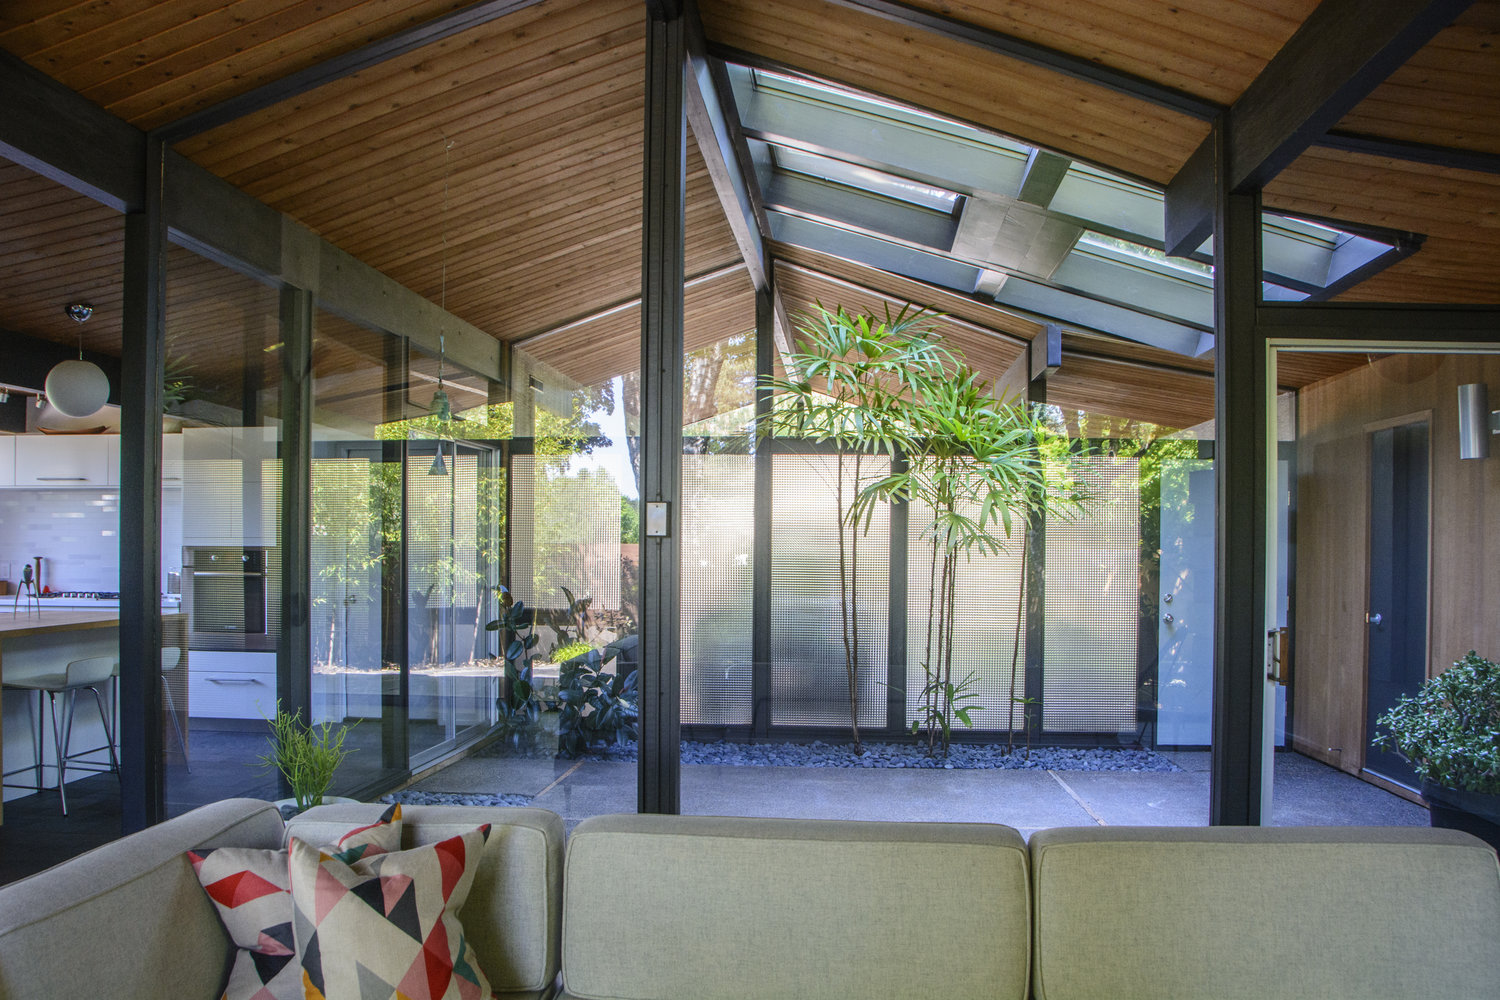 updated midcentury portland home with japanese gardens asks 699k